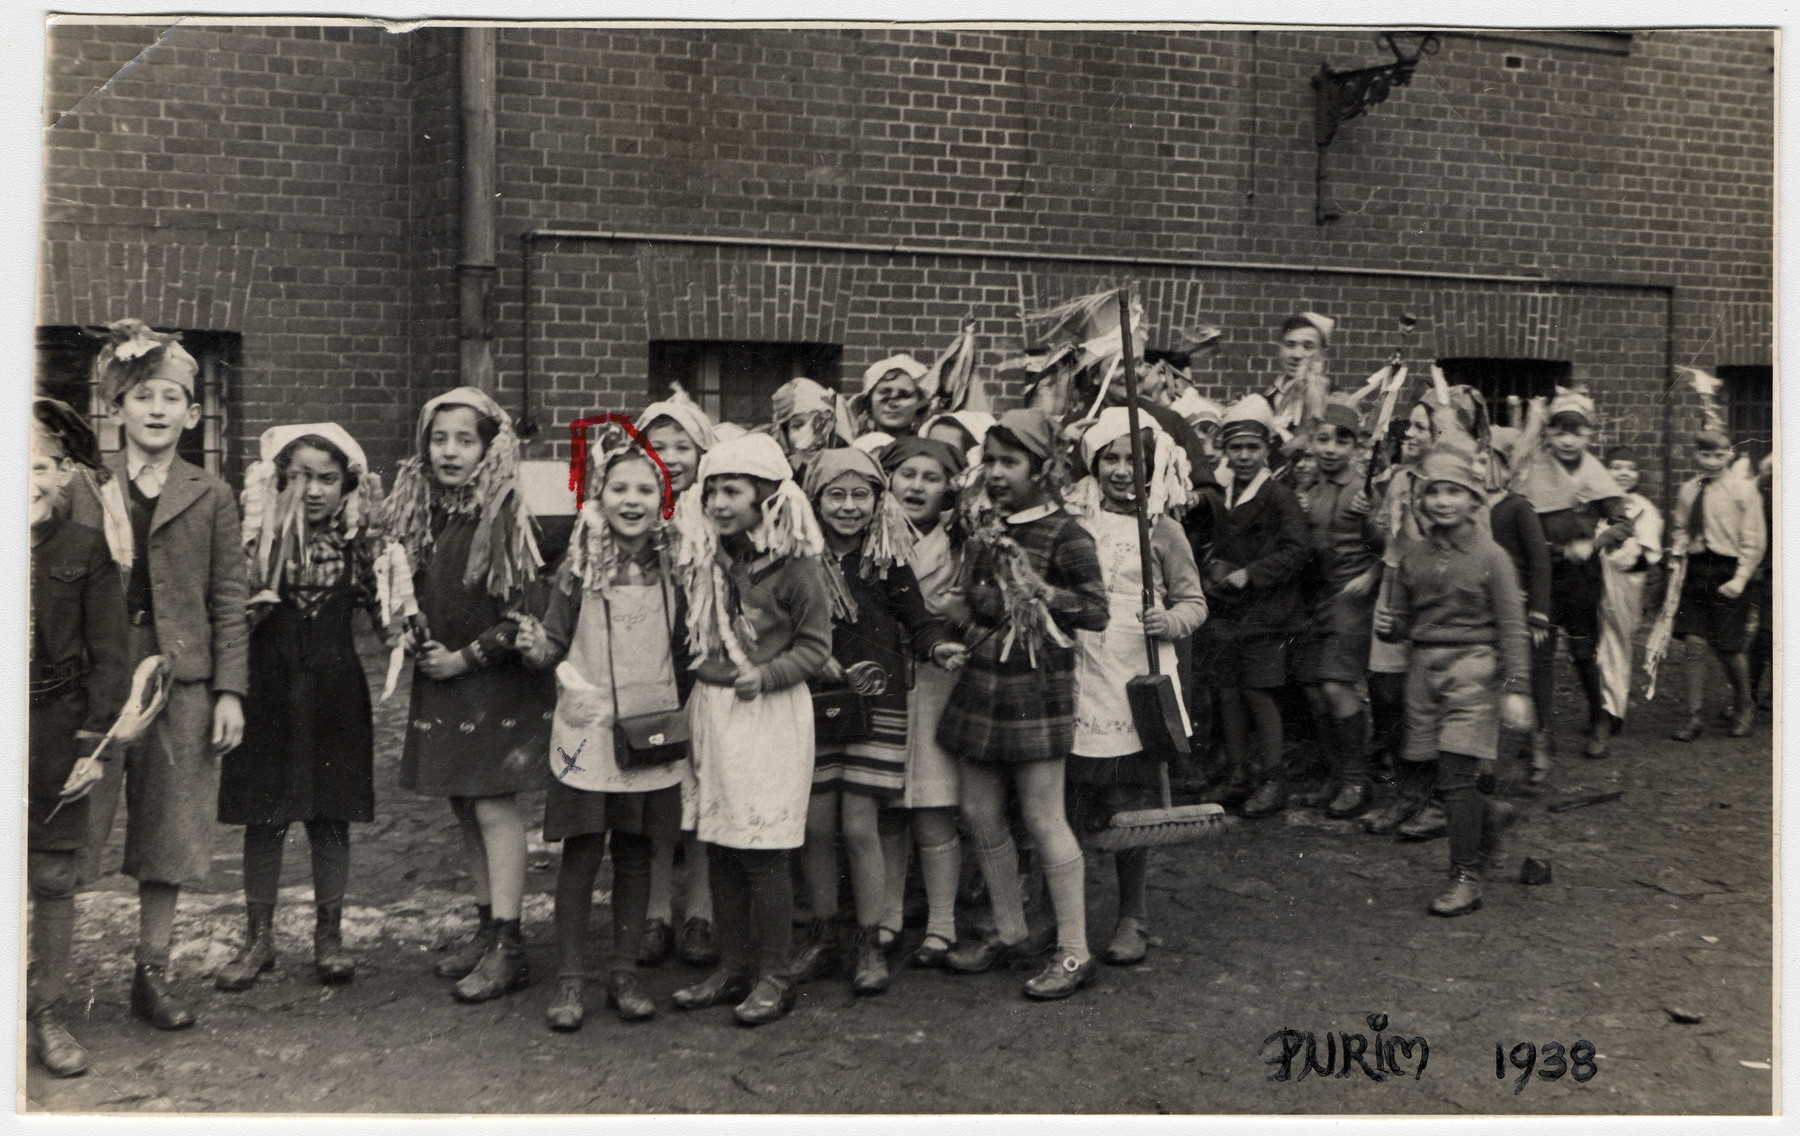 Children from the Jewish school in Koenigsberg line up in their Purim costumes.  Ingeborg Majewski is pictured fifth from the left.